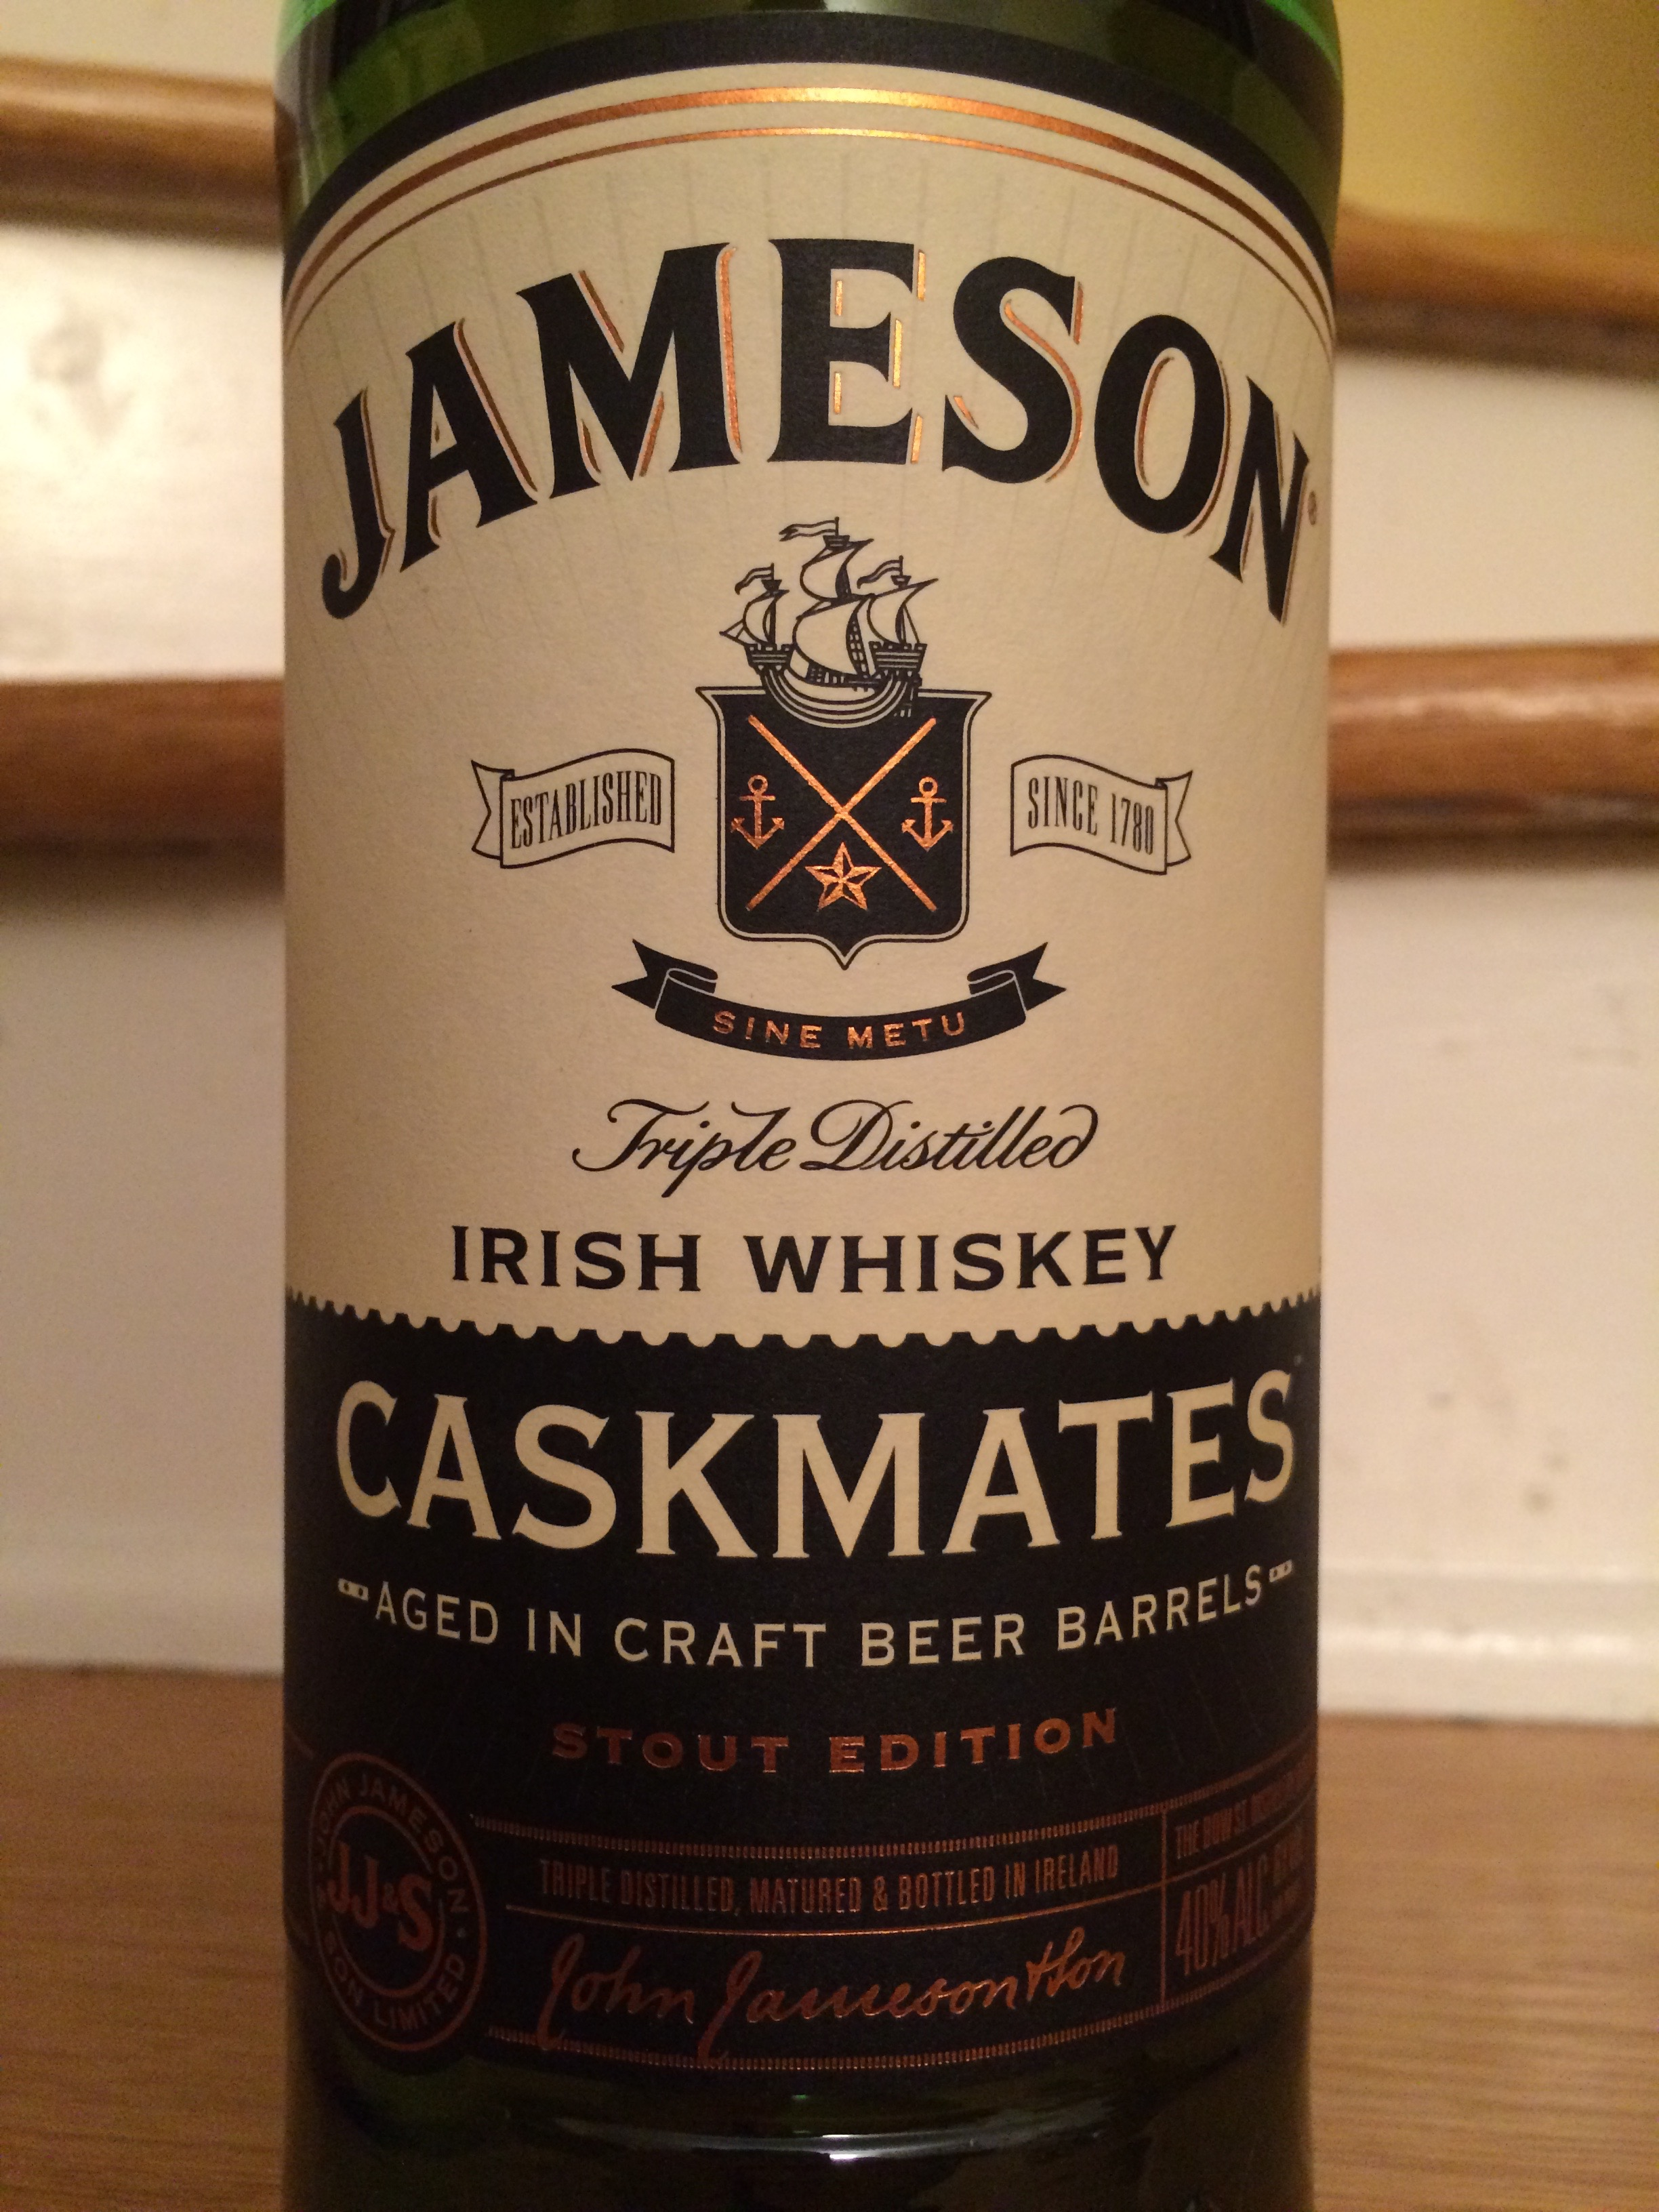 Jameson Caskmates Sout Edition Label Closeup